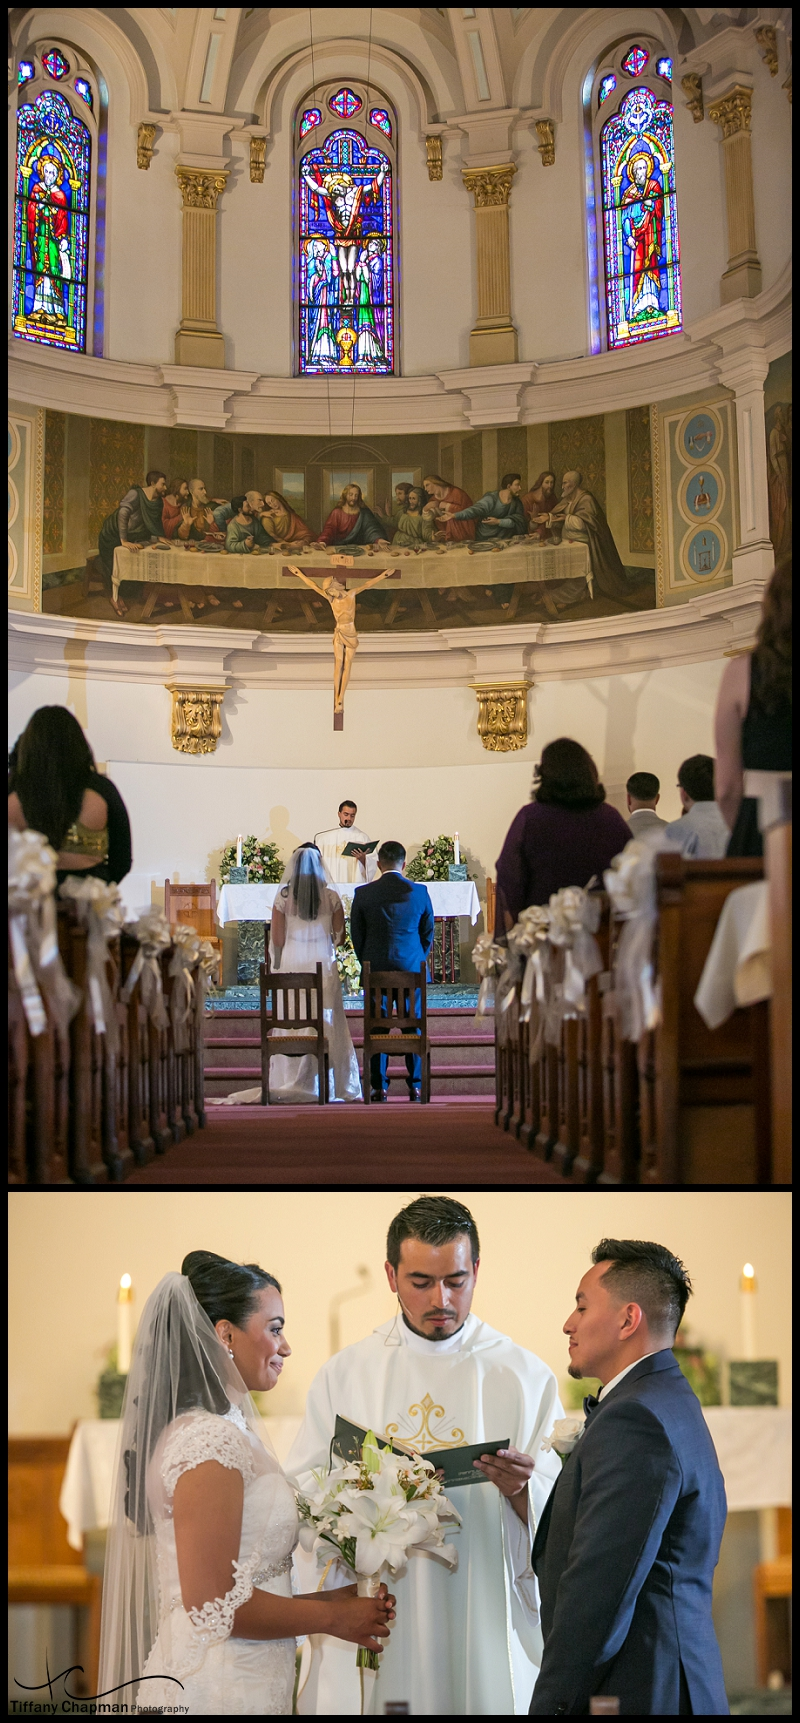 This church, the ceremony, that dress, that tux....so beautiful!